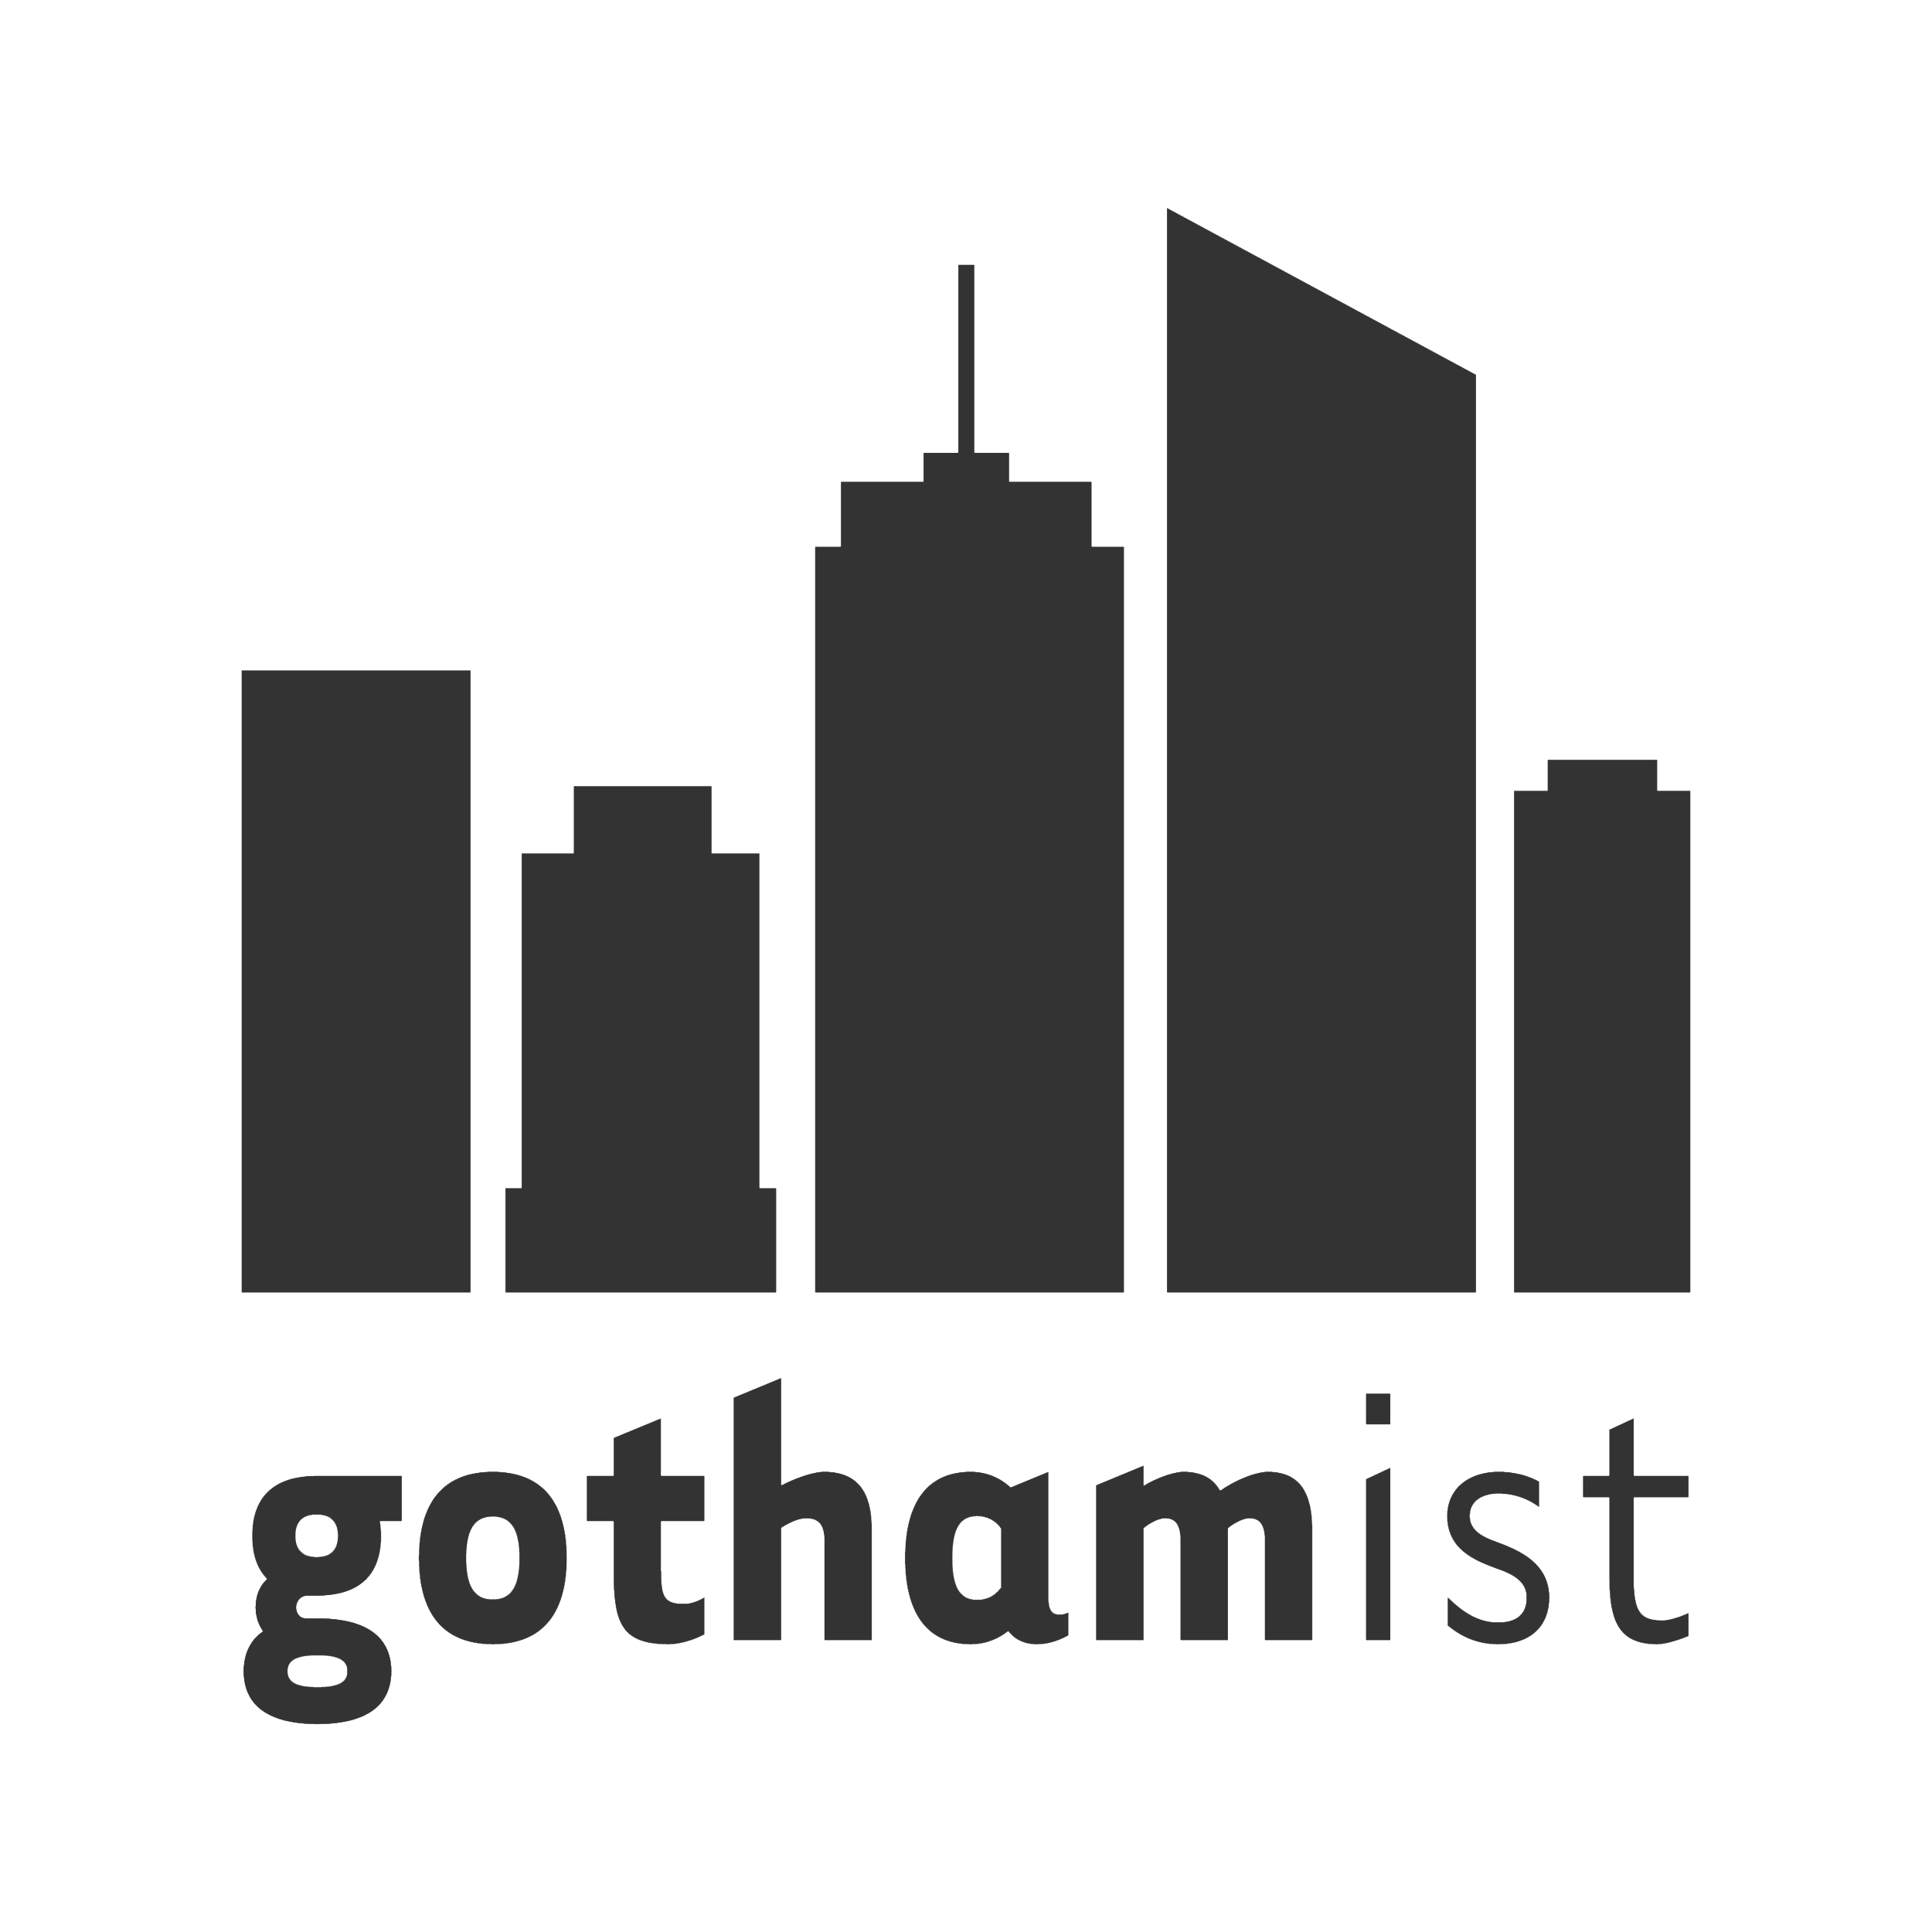 We bring news and opinion to natives and the people who want to be them. After 13 years online, we're famous for a voice that readers know and trust—sage and snarky, but always genuine.   Read more at gothamist.com